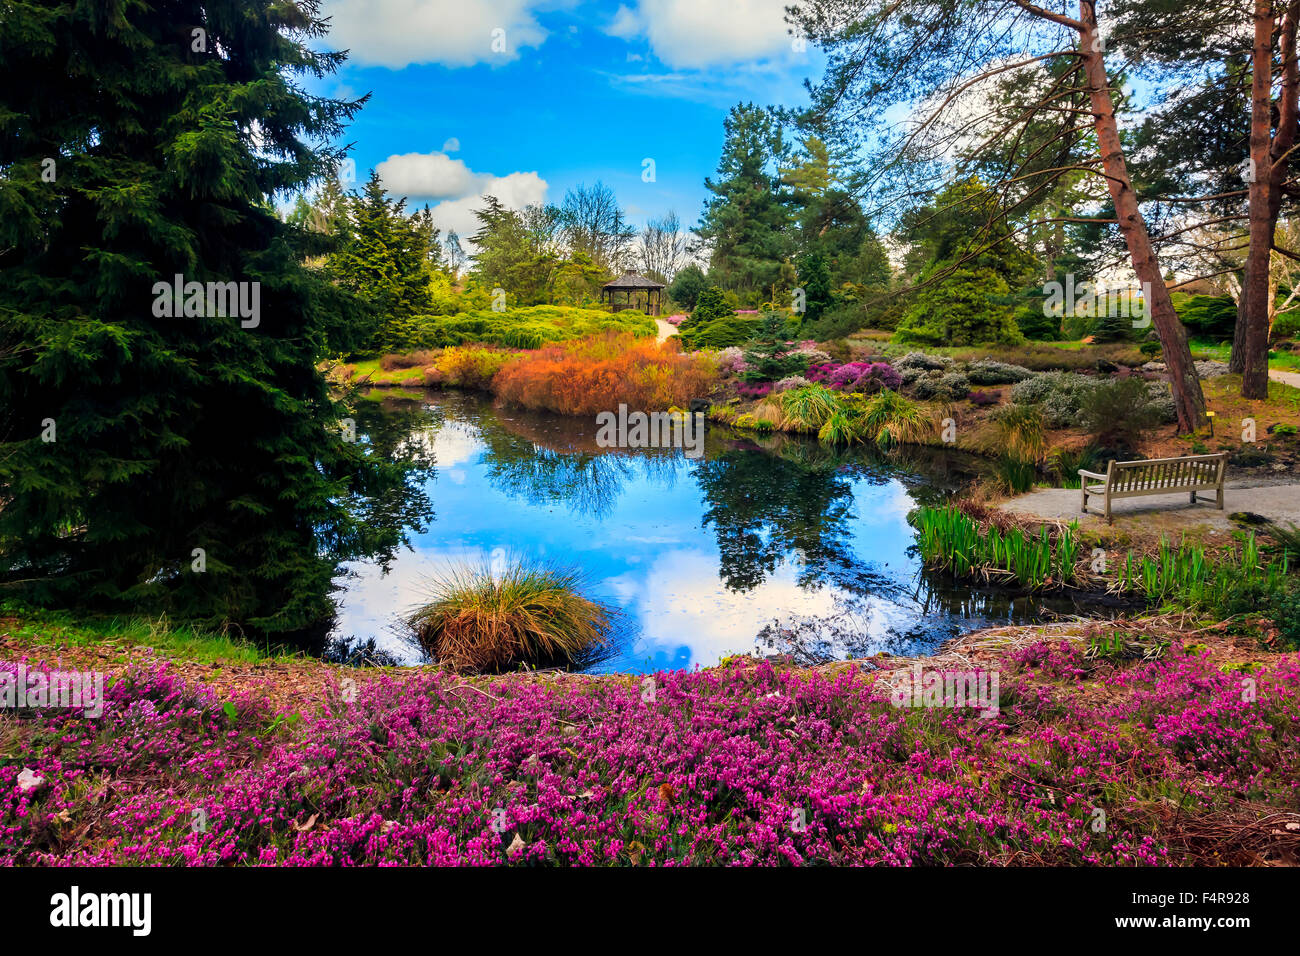 Canada, British Columbia, Japanese Gardens, Bench, Pond, Blue Sky,  Reflection, Gardens, Blossoms, Blooms, Pink, Trees